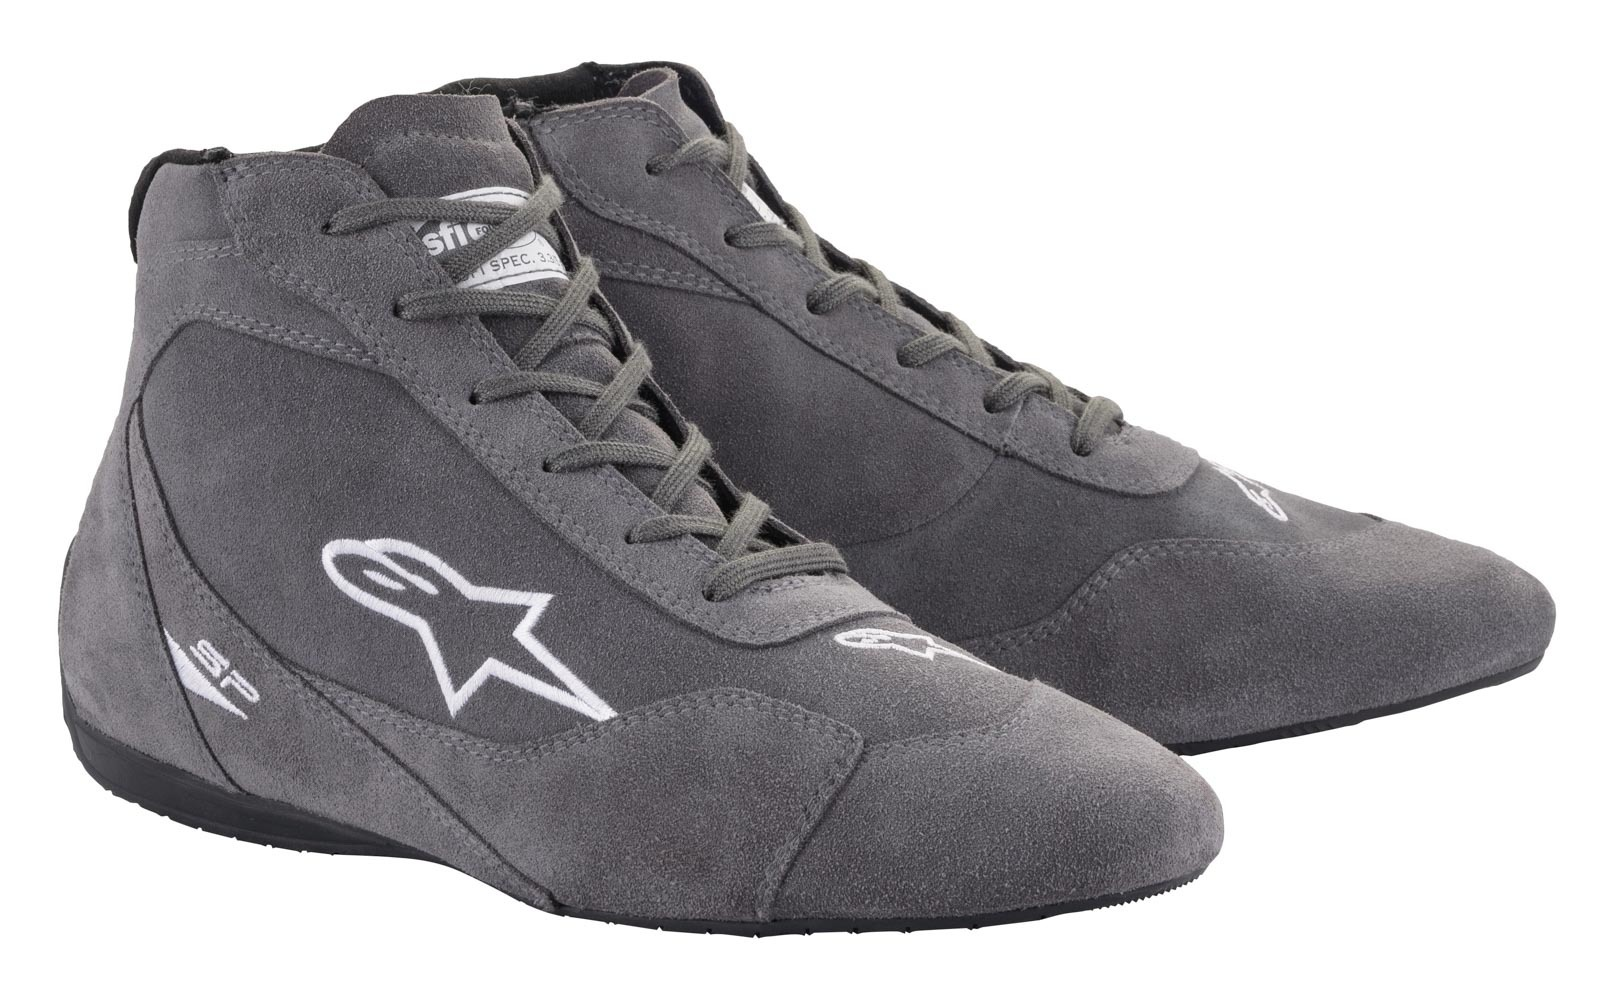 Alpinestars 2710621-11-10 Shoe, SP V2, Driving, Mid-Top, SFI3.3/5, Suede Outer, Nomex Inner, Dark Gray, Size 10, Pair